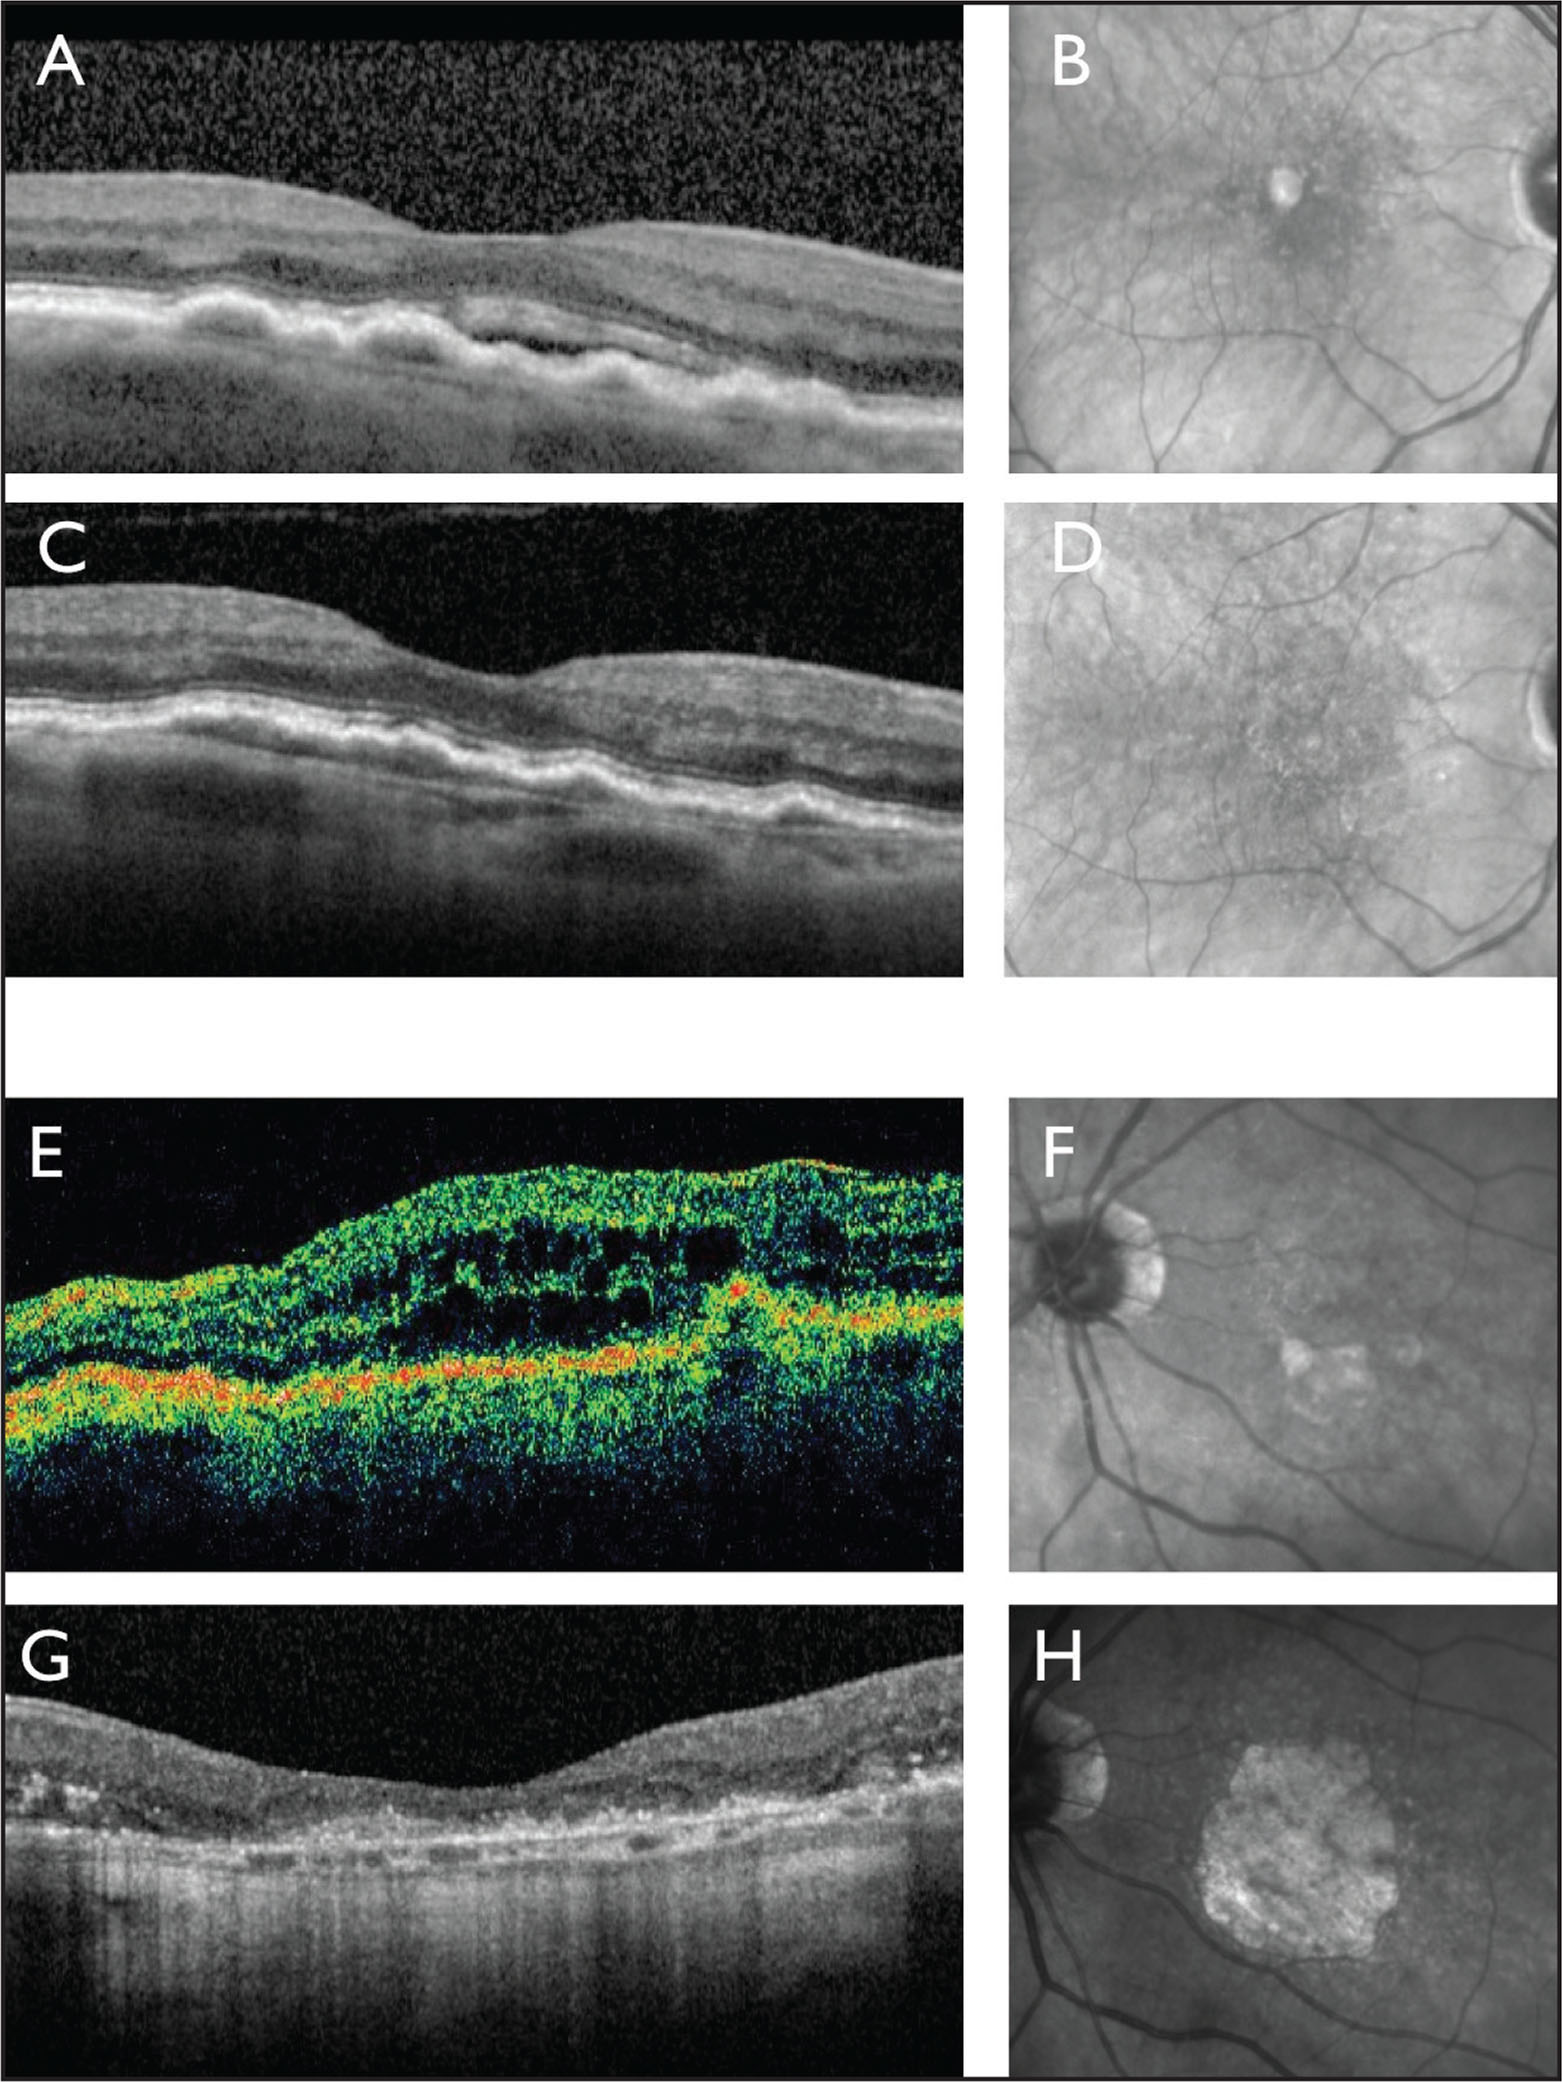 SD-OCT (A) and near-infrared reflectance (NIR) image (B) show the right eye of an 80-year-old woman with newly symptomatic type 1 neovascularization. A treat-and-extend regimen with a 4- to 6-week injection interval was initiated. SD-OCT (C) and NIR image (D) 5 years later and after 41 intravitreal injections of ranibizumab show persistence of type 1 neovascularization but no evidence of geographic atrophy. Vision remains stable at 20/50. Time-domain OCT (E) and NIR image (F) show the left eye of an 87-year-old man with newly symptomatic type 3 neo-vascularization. A treat-and-extend regimen with a 5- to 6-week injection interval was initiated. SD-OCT (G) and NIR image (H) 5 years later and after 45 intravitreal injections of ranibizumab show extensive geographic atrophy. Vision has deteriorated to 20/400.